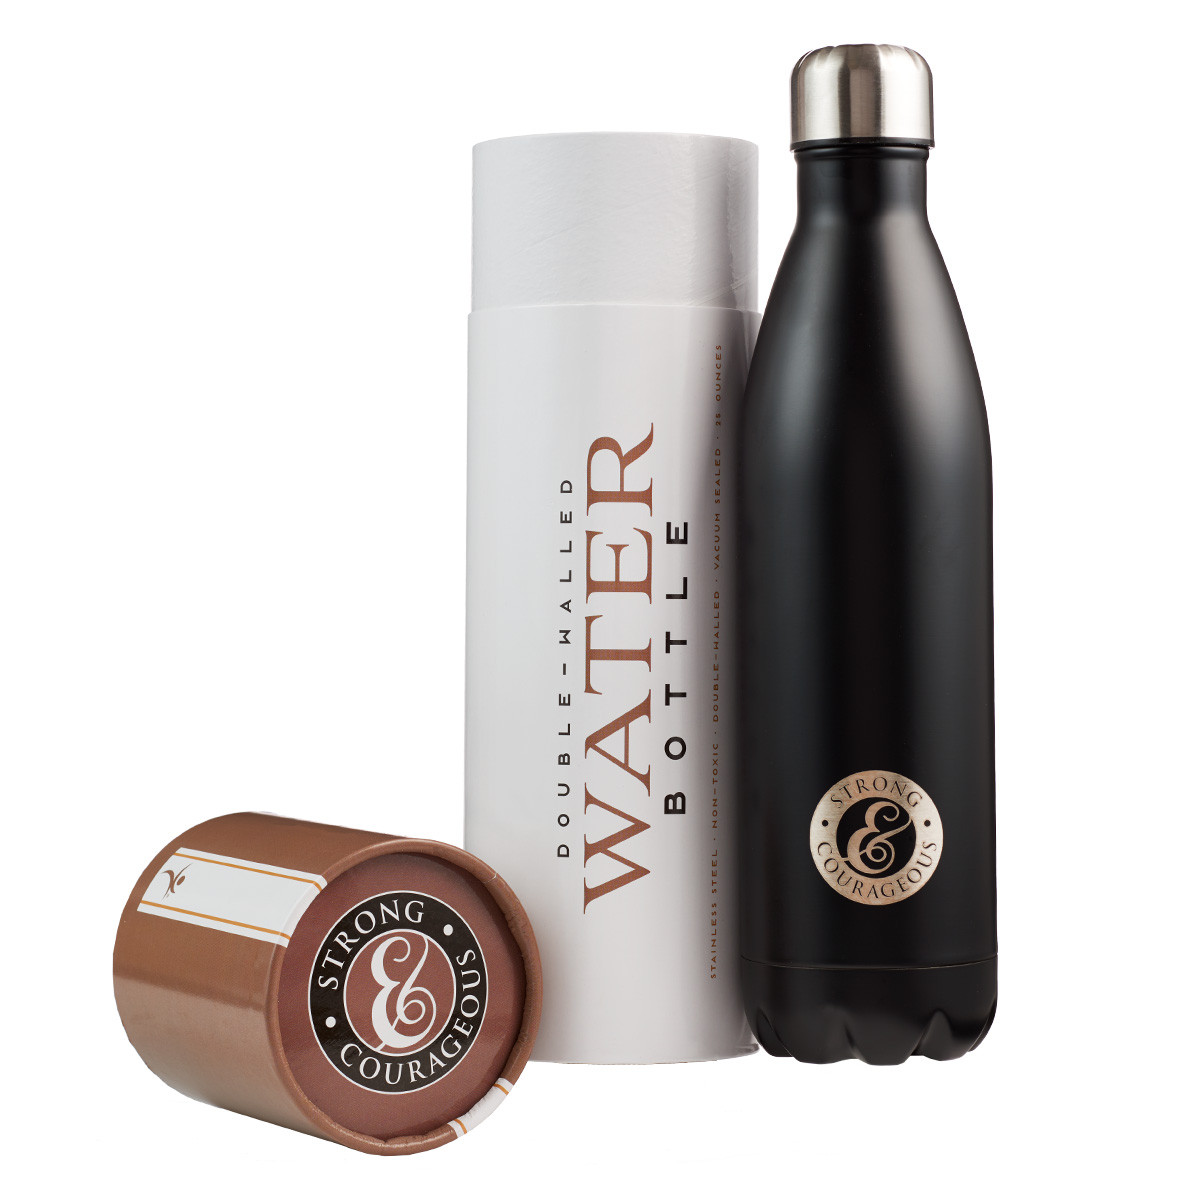 Water Bottle In Spanish: Stainless Water Bottle: Strong And Courageous In Black